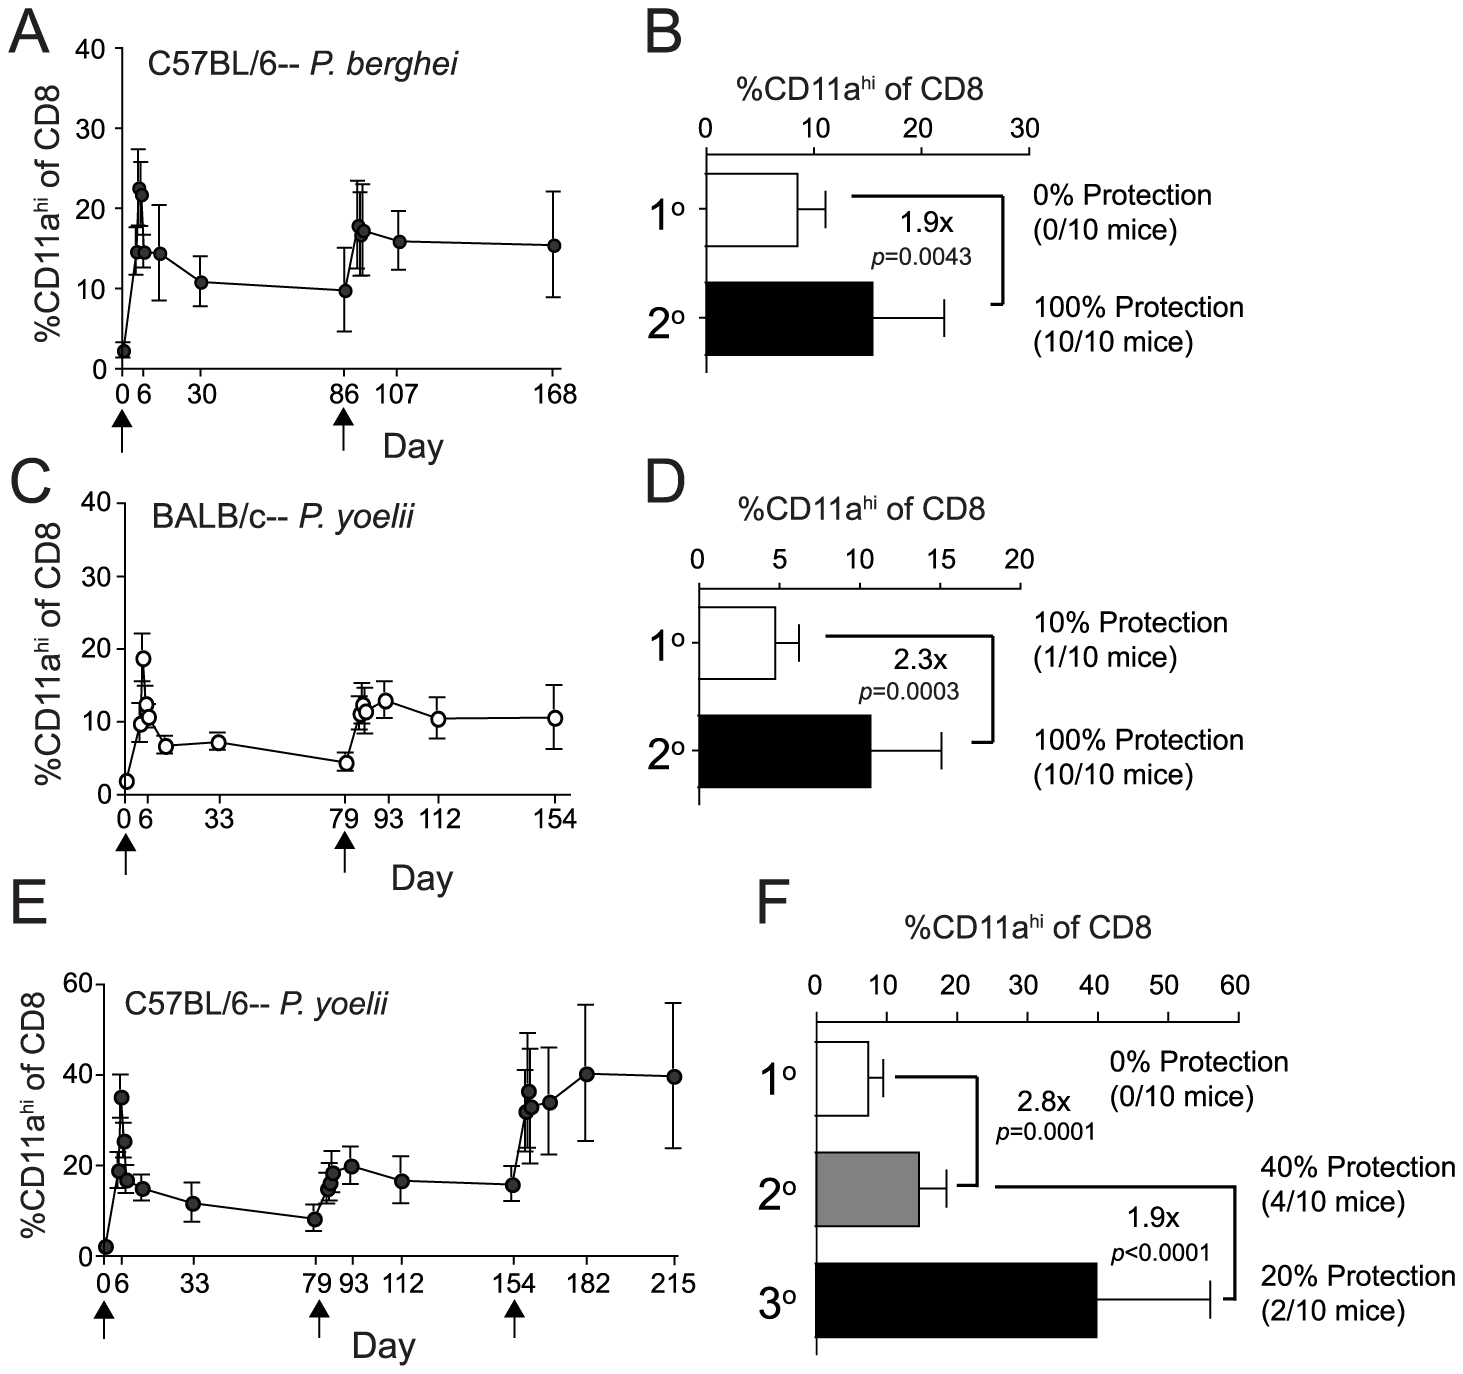 Homologous <i>Pb</i>- or <i>Py</i>-RAS boosting of mice elicits robust memory CD8 T cell responses but does not enhance protection of C57BL/6 mice against <i>Py</i> sporozoite challenge.